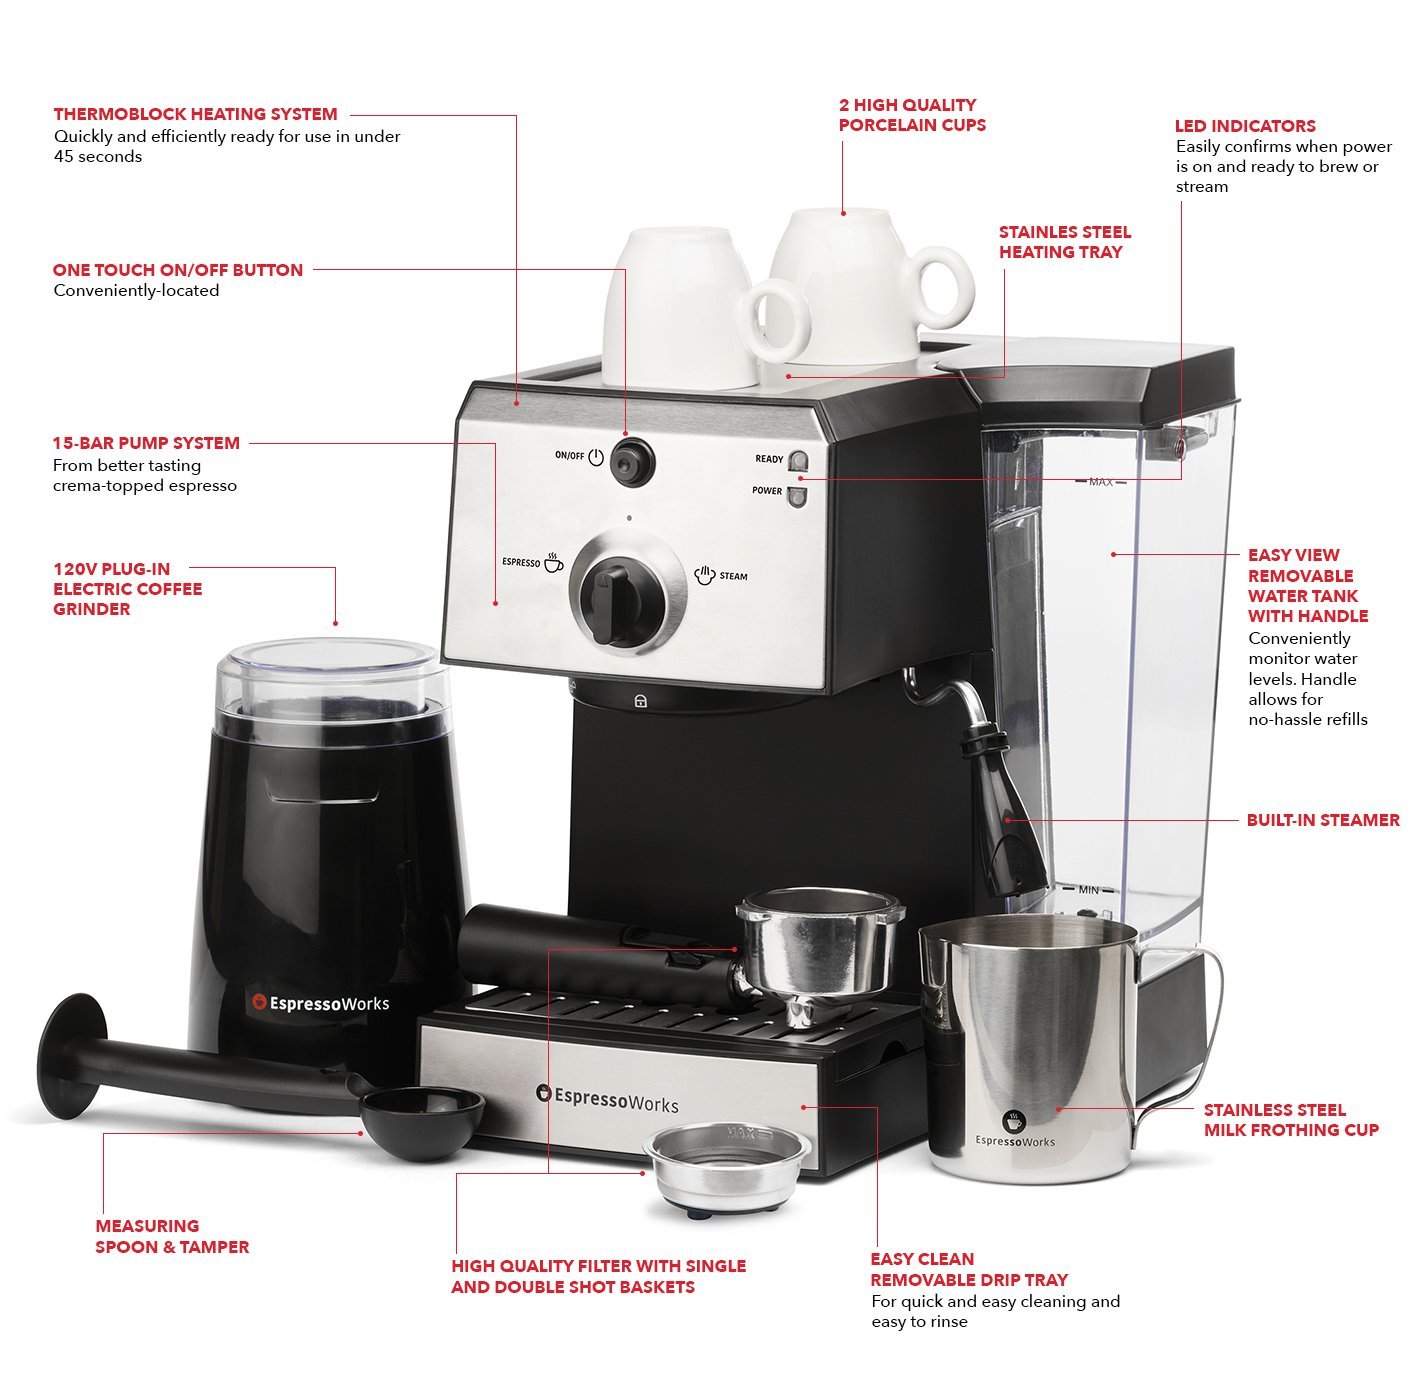 7 Pc All-In-One Espresso/Cappuccino Machine Bundle Set- (Includes: Electric Coffee Bean Grinder, Portafilter, Stainless Steel Frothing Cup, Measuring Spoon w/ Tamper & 2 Espresso Cups), Silver/Black by EspressoWorks (Image #4)